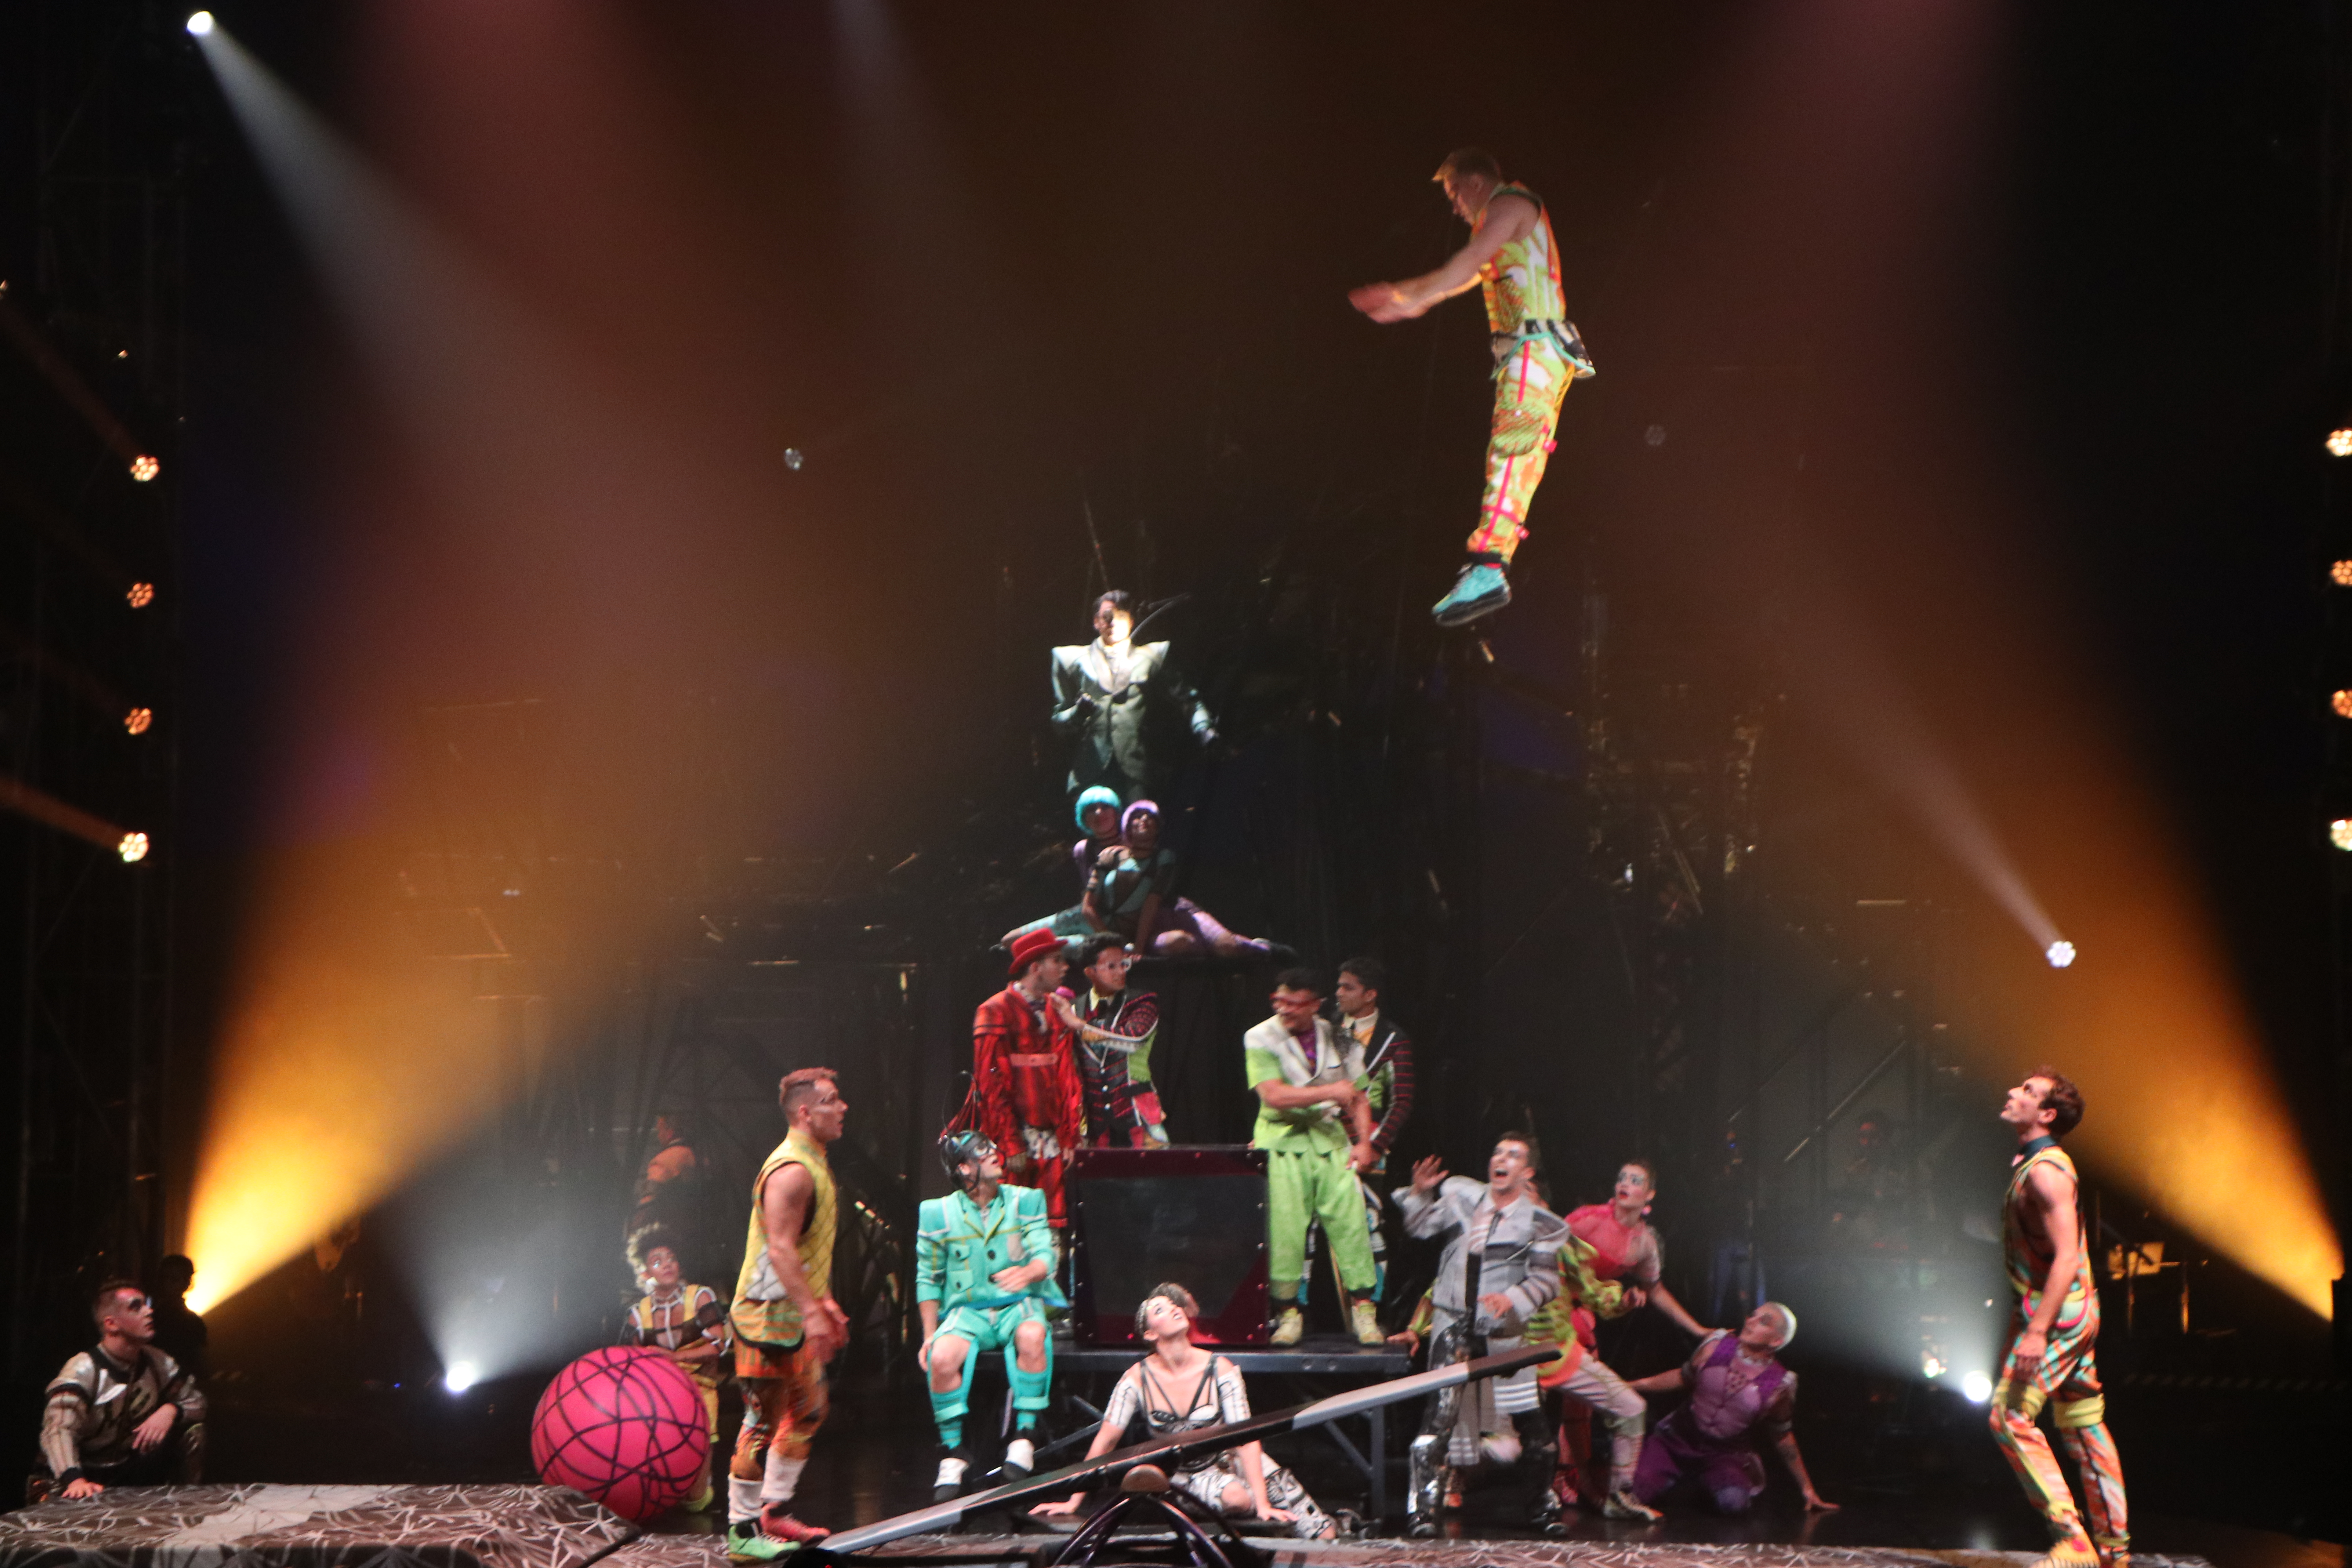 Cirque du Soleil: A teeterboarder has 1.8 seconds to take a call